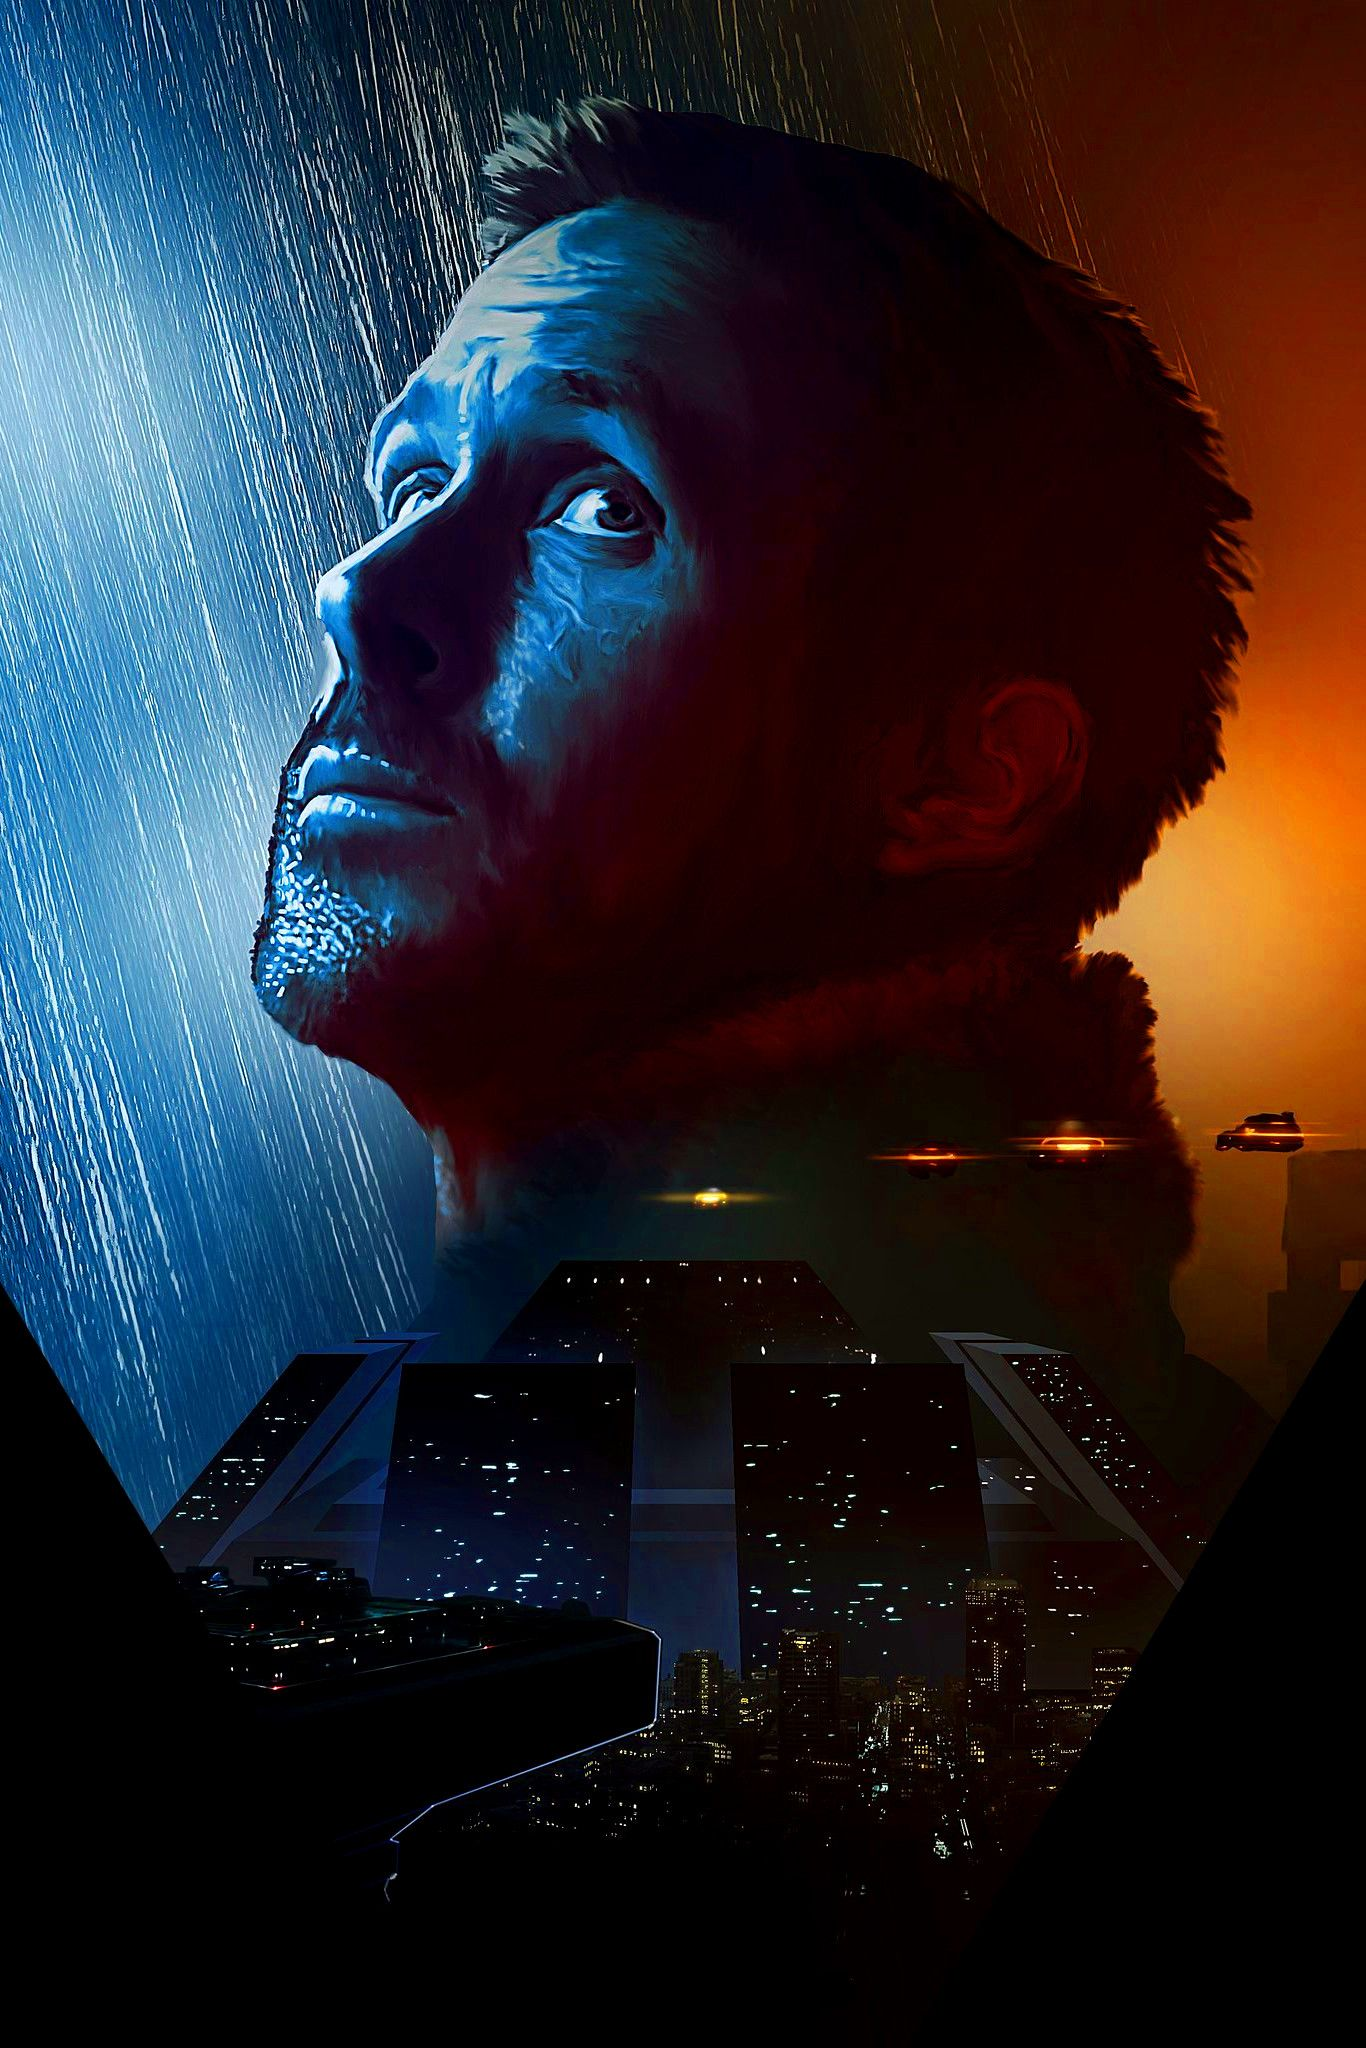 Pin By Stan Evans Photo On Blade Runner 2049 Blade Runner Blade Runner Art Blade Runner 2049